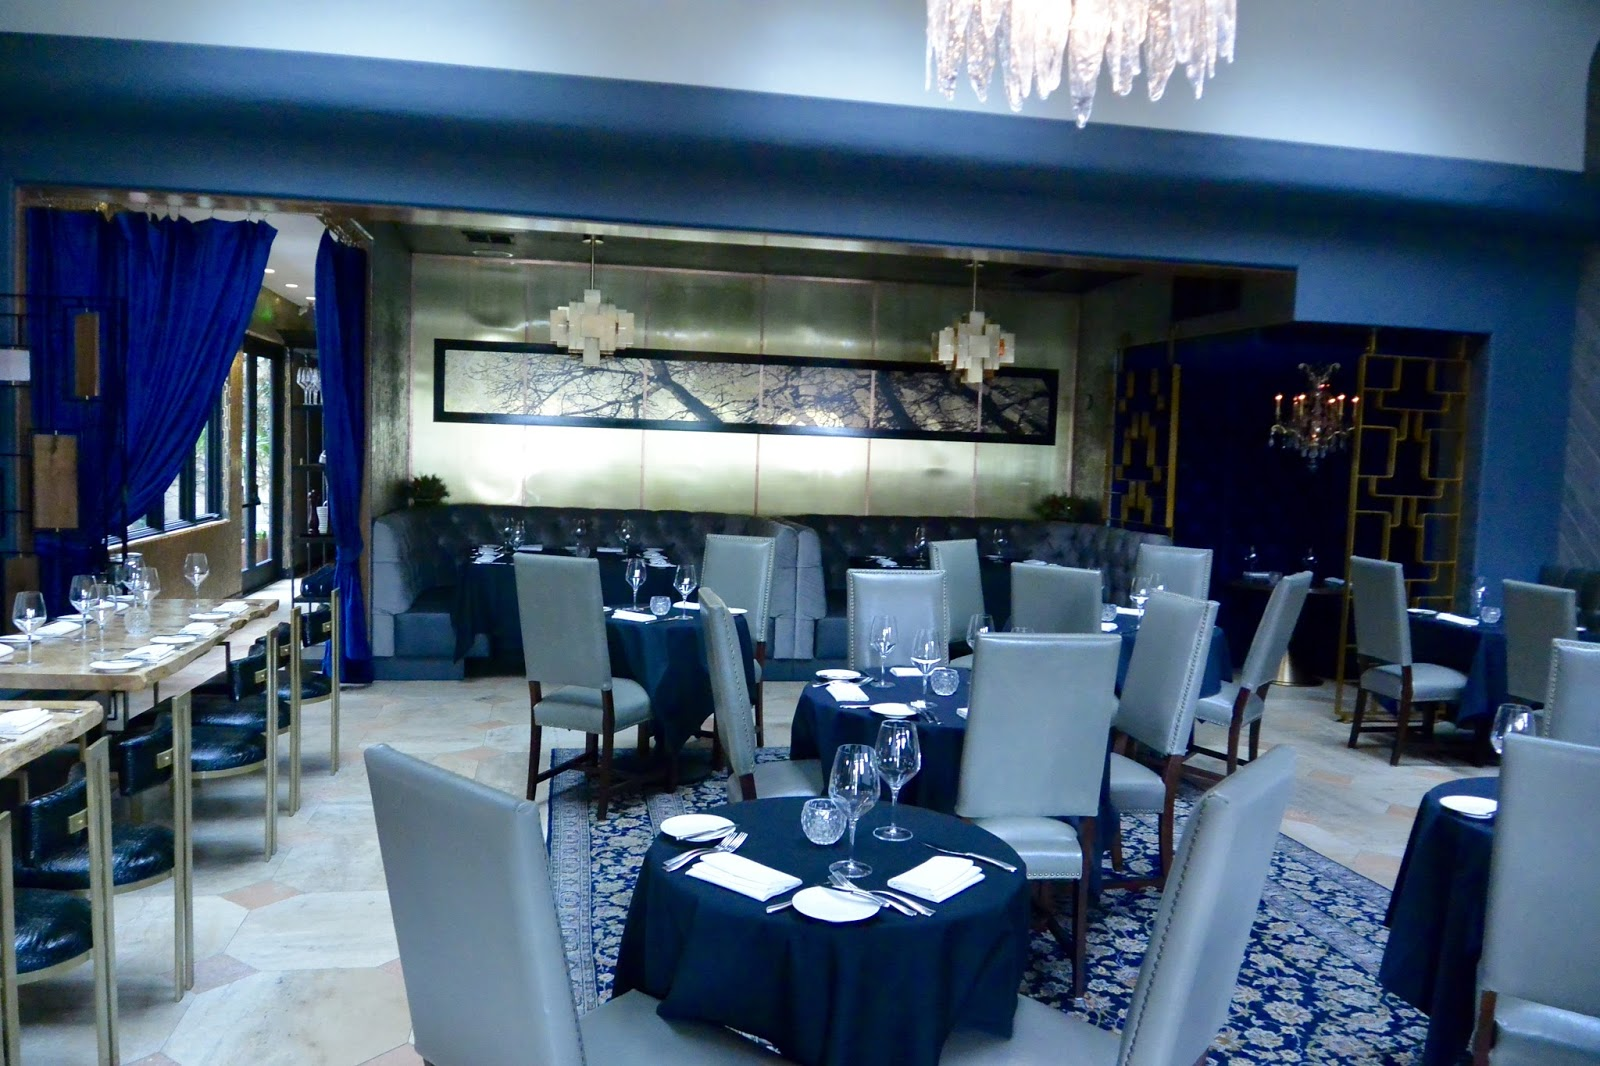 time fancy dining room. Wonderful Time As 2016 Is Winding Down Itu0027s A Great Time To Celebrate And Treat Ourselves  Nice Meal In An Elegant Place For Job Well Done In Time Fancy Dining Room U